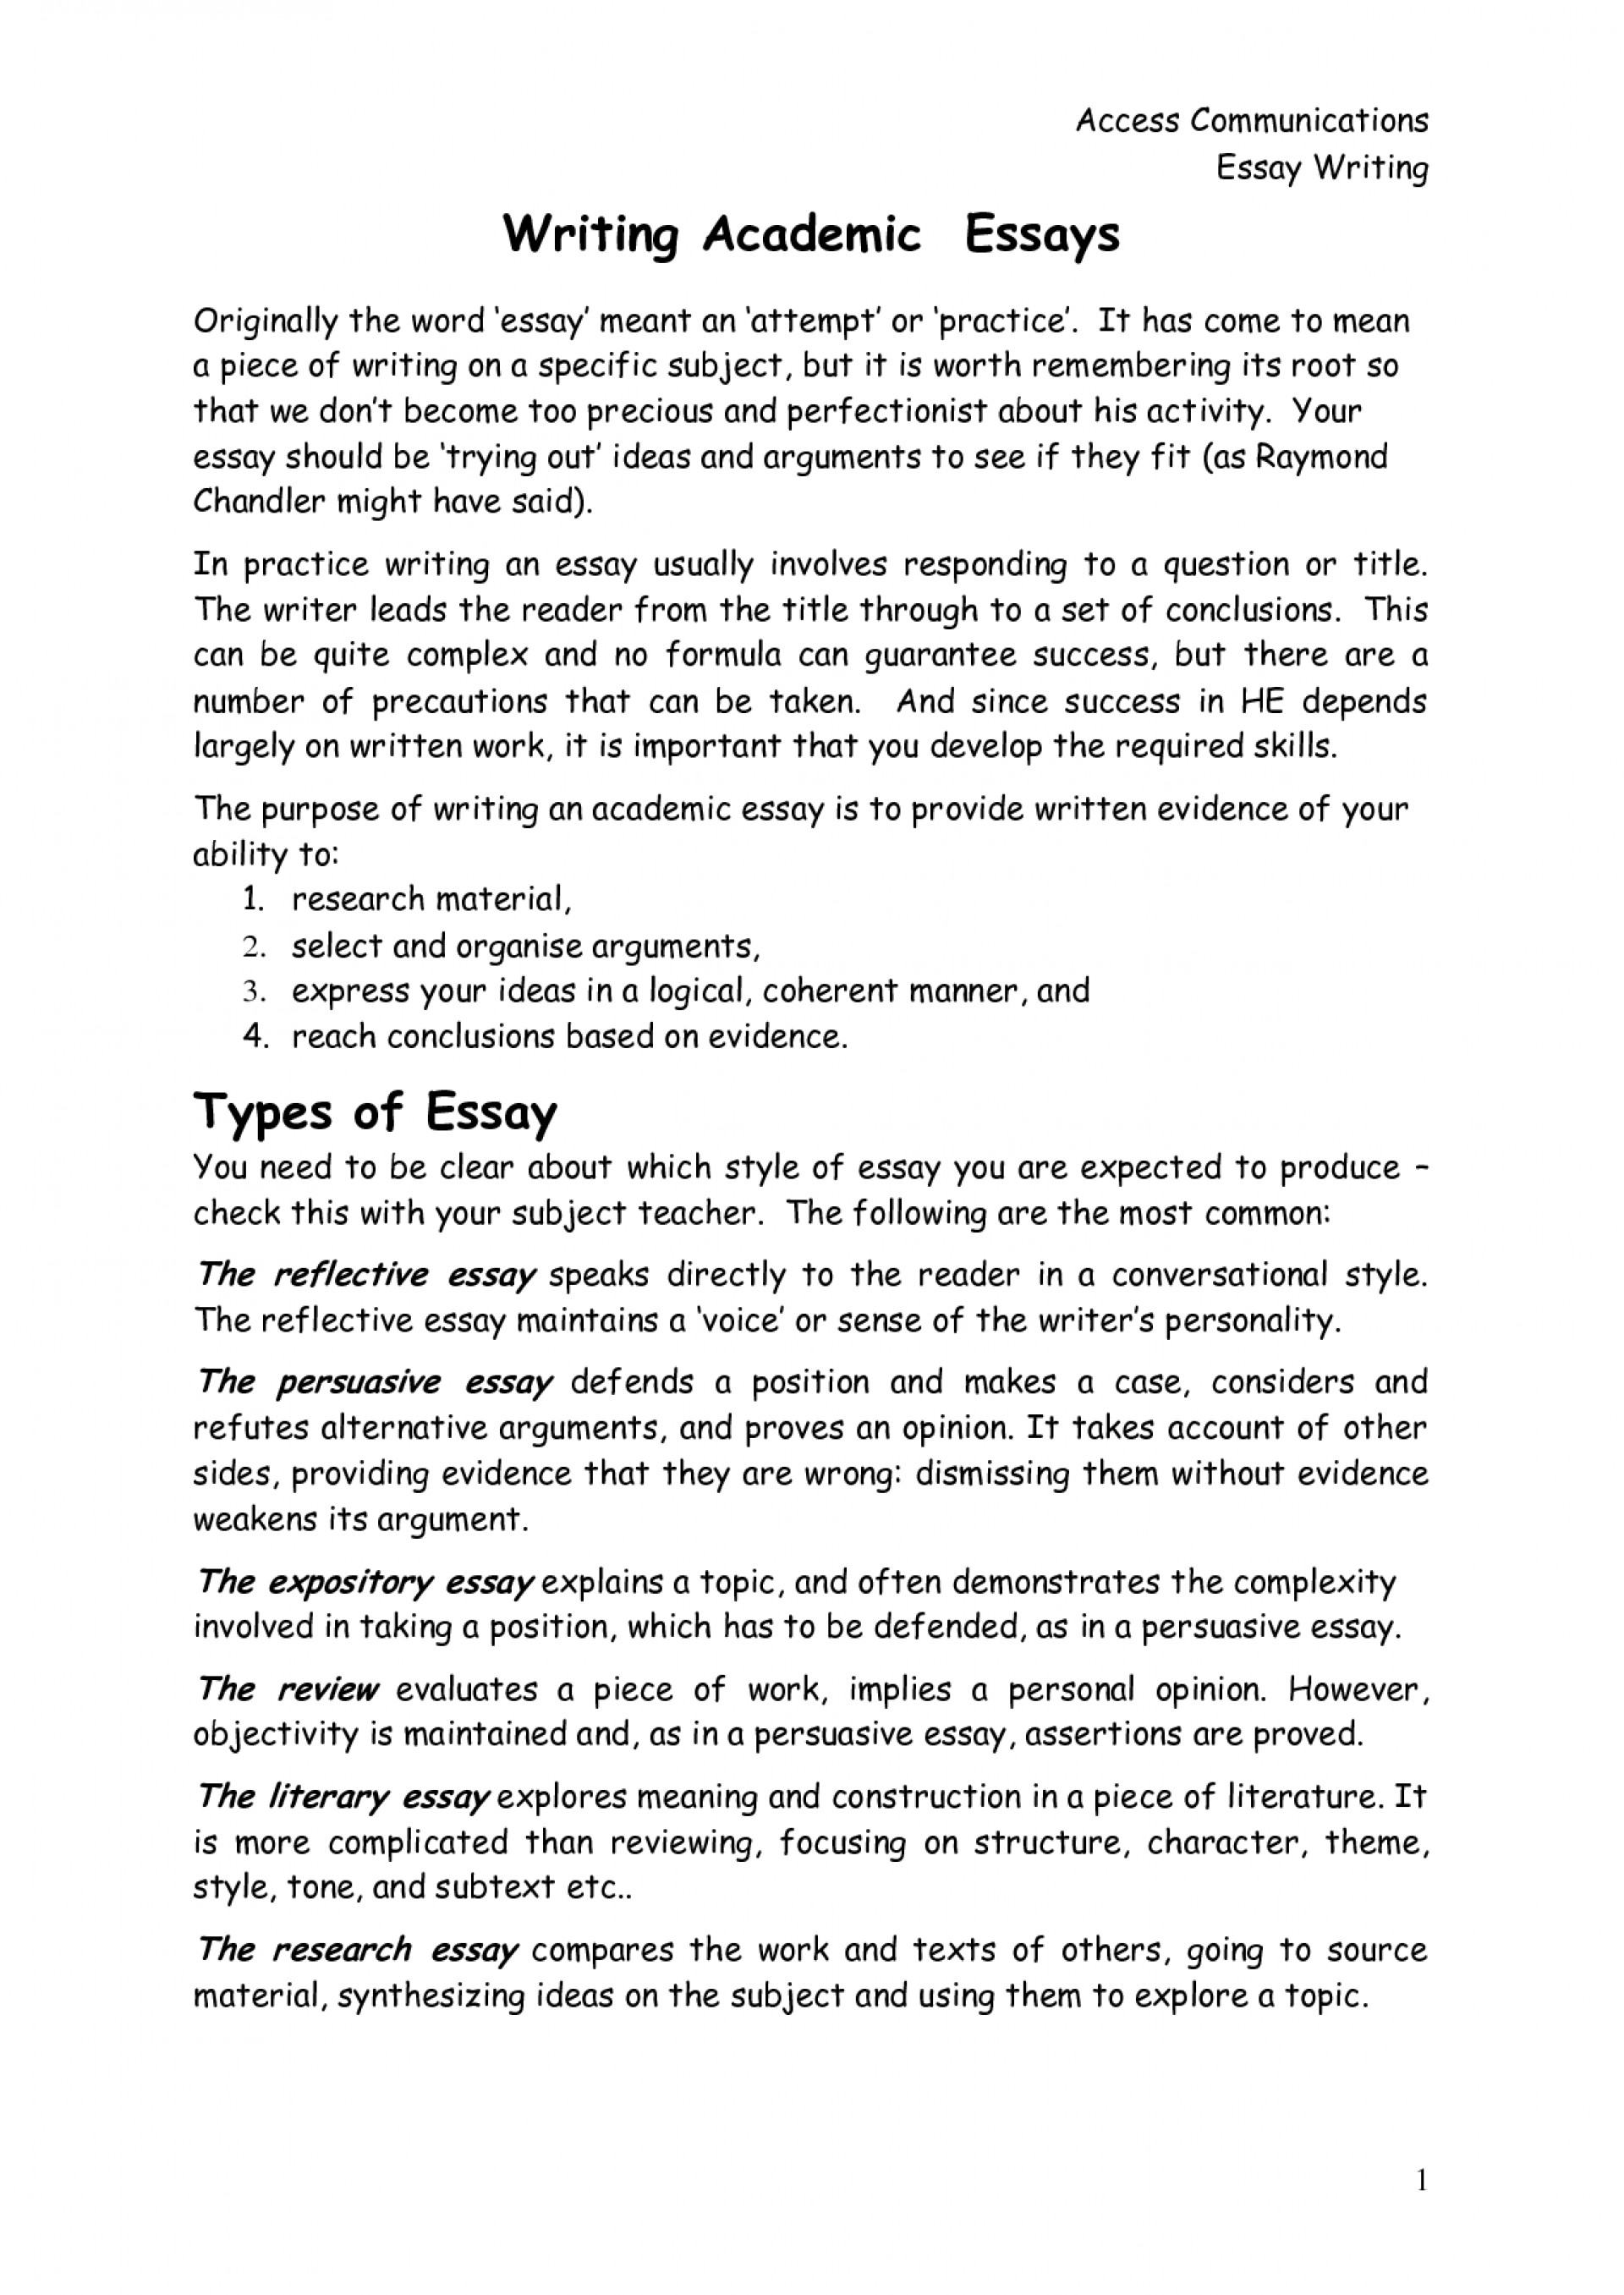 016 Reflective Essay On Academic Writings Beautiful Examples English Pdf For Middle School Writing Class 1920